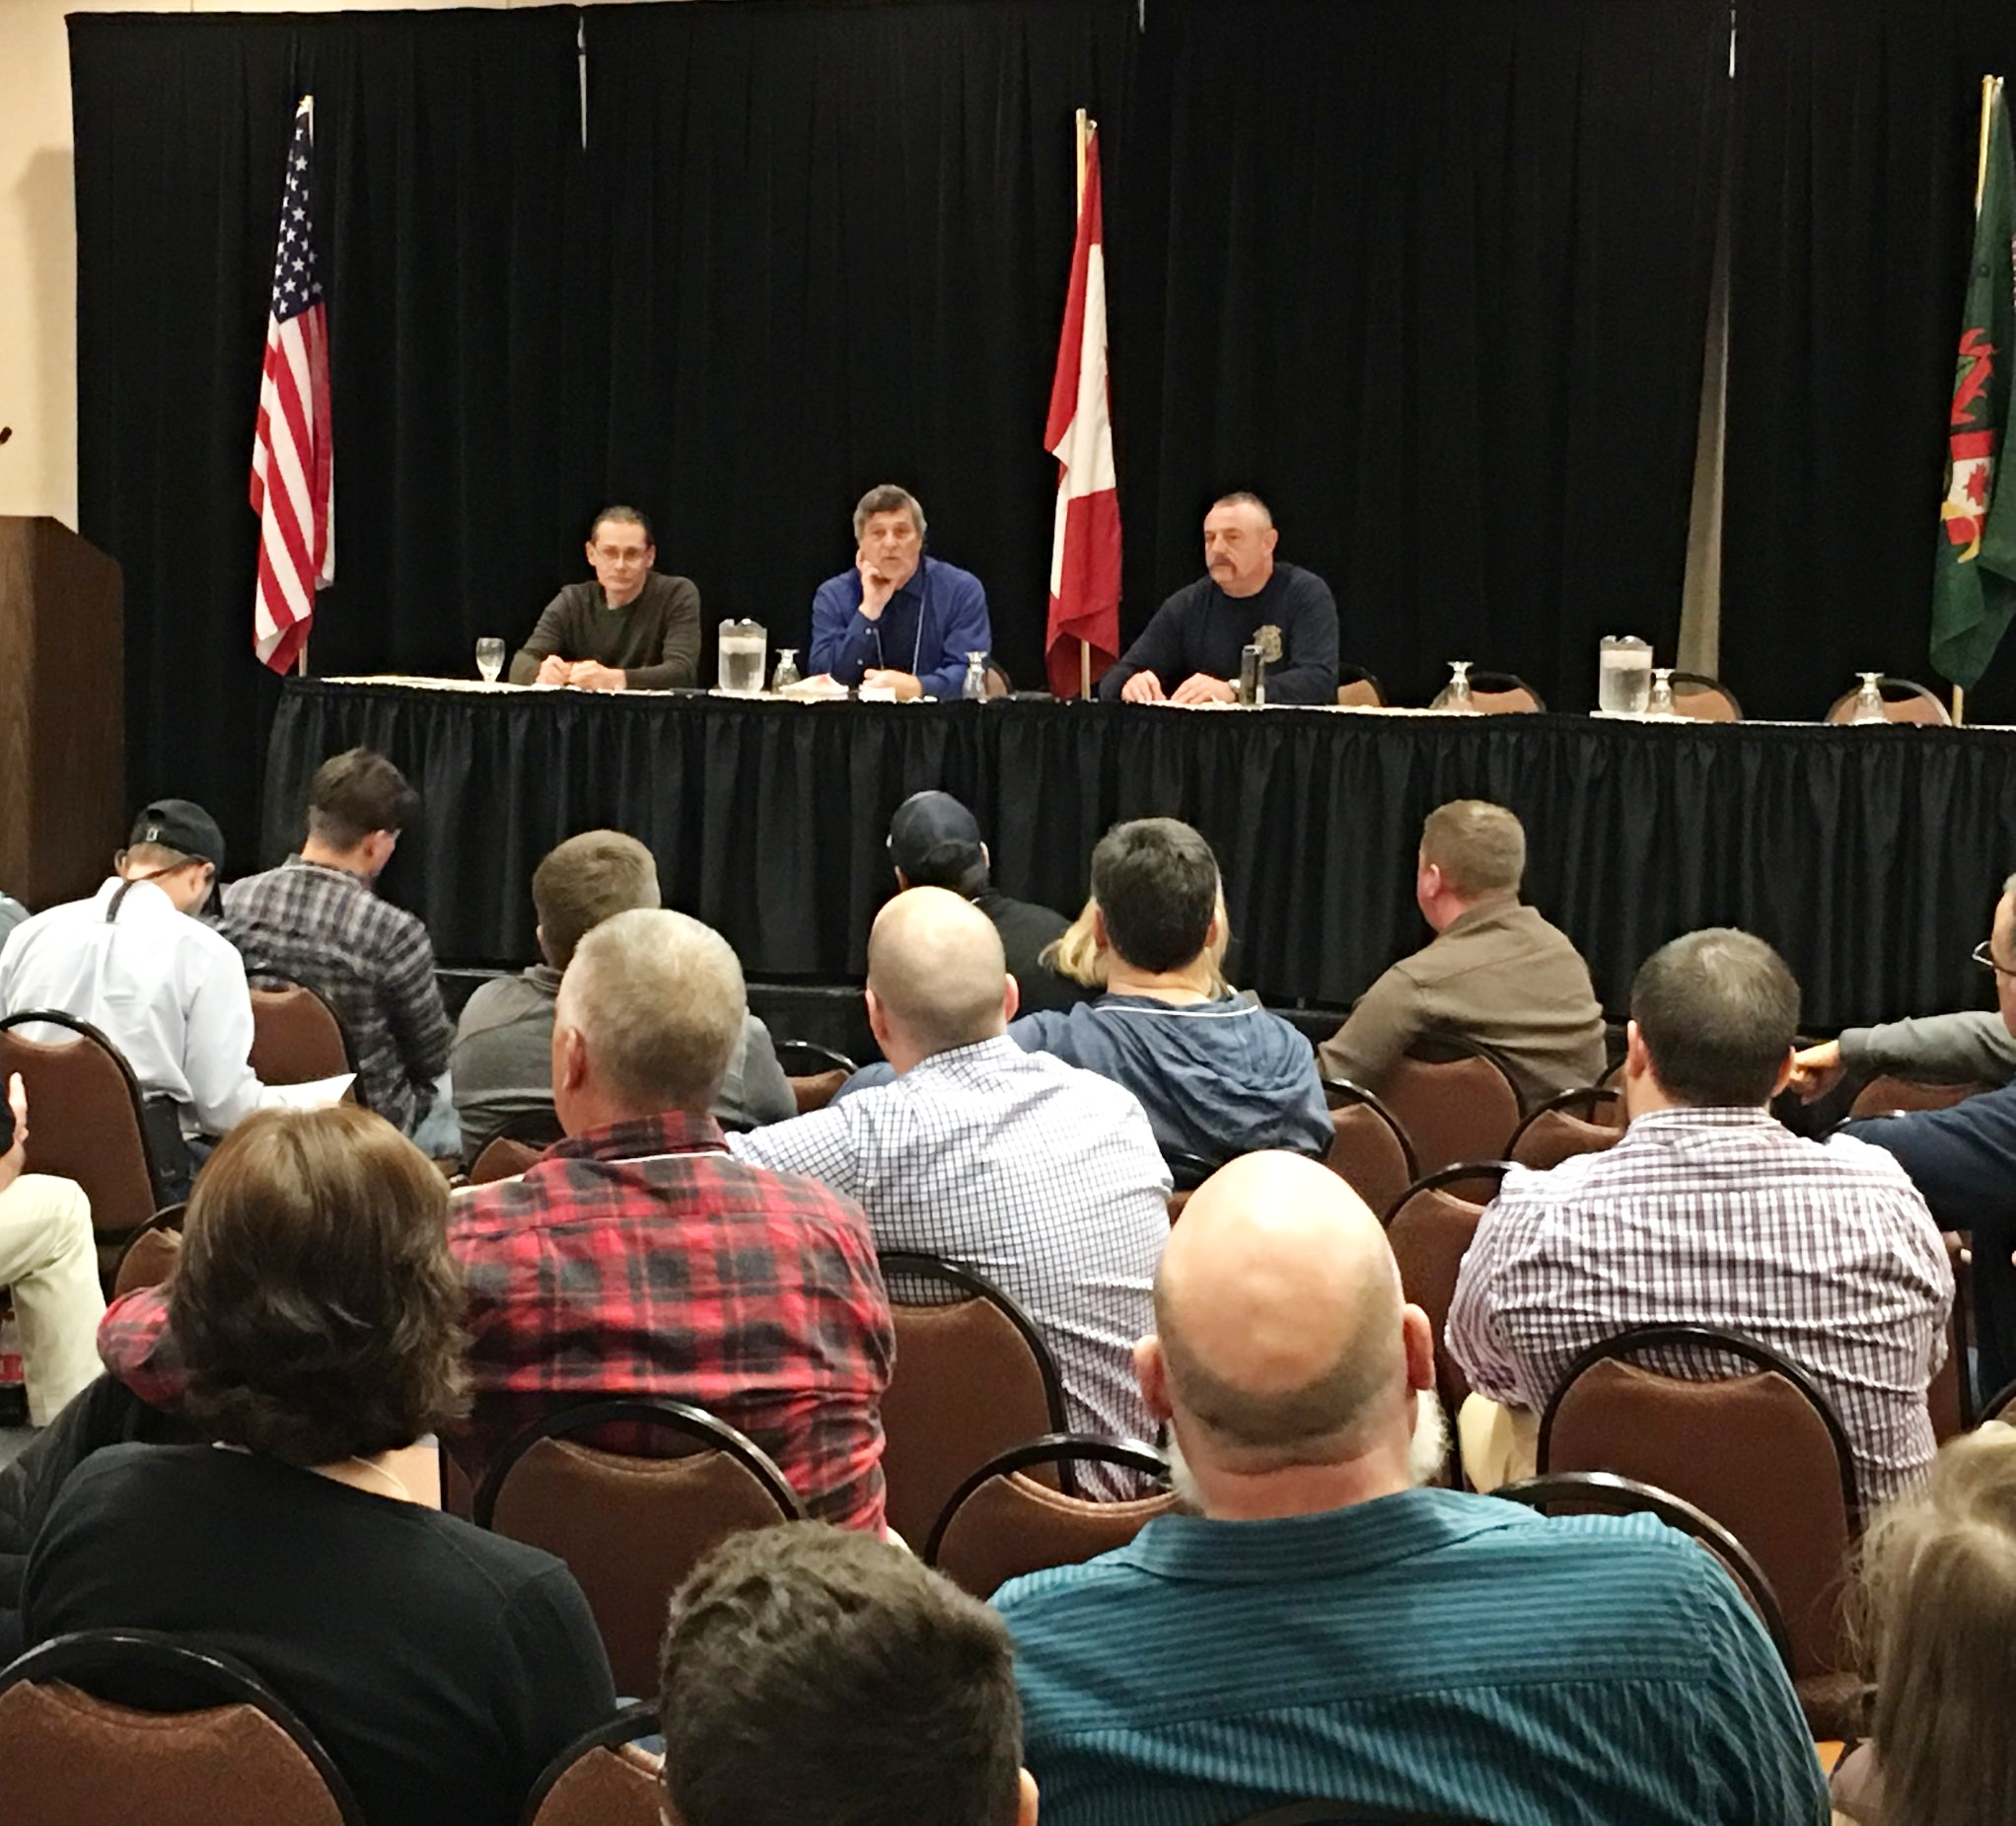 Panel on Gatlinburg/Appalachian 2016 fires with Dr. Steve Norman, Dr. Henri Grissino-Myers and Matt Lovitt.